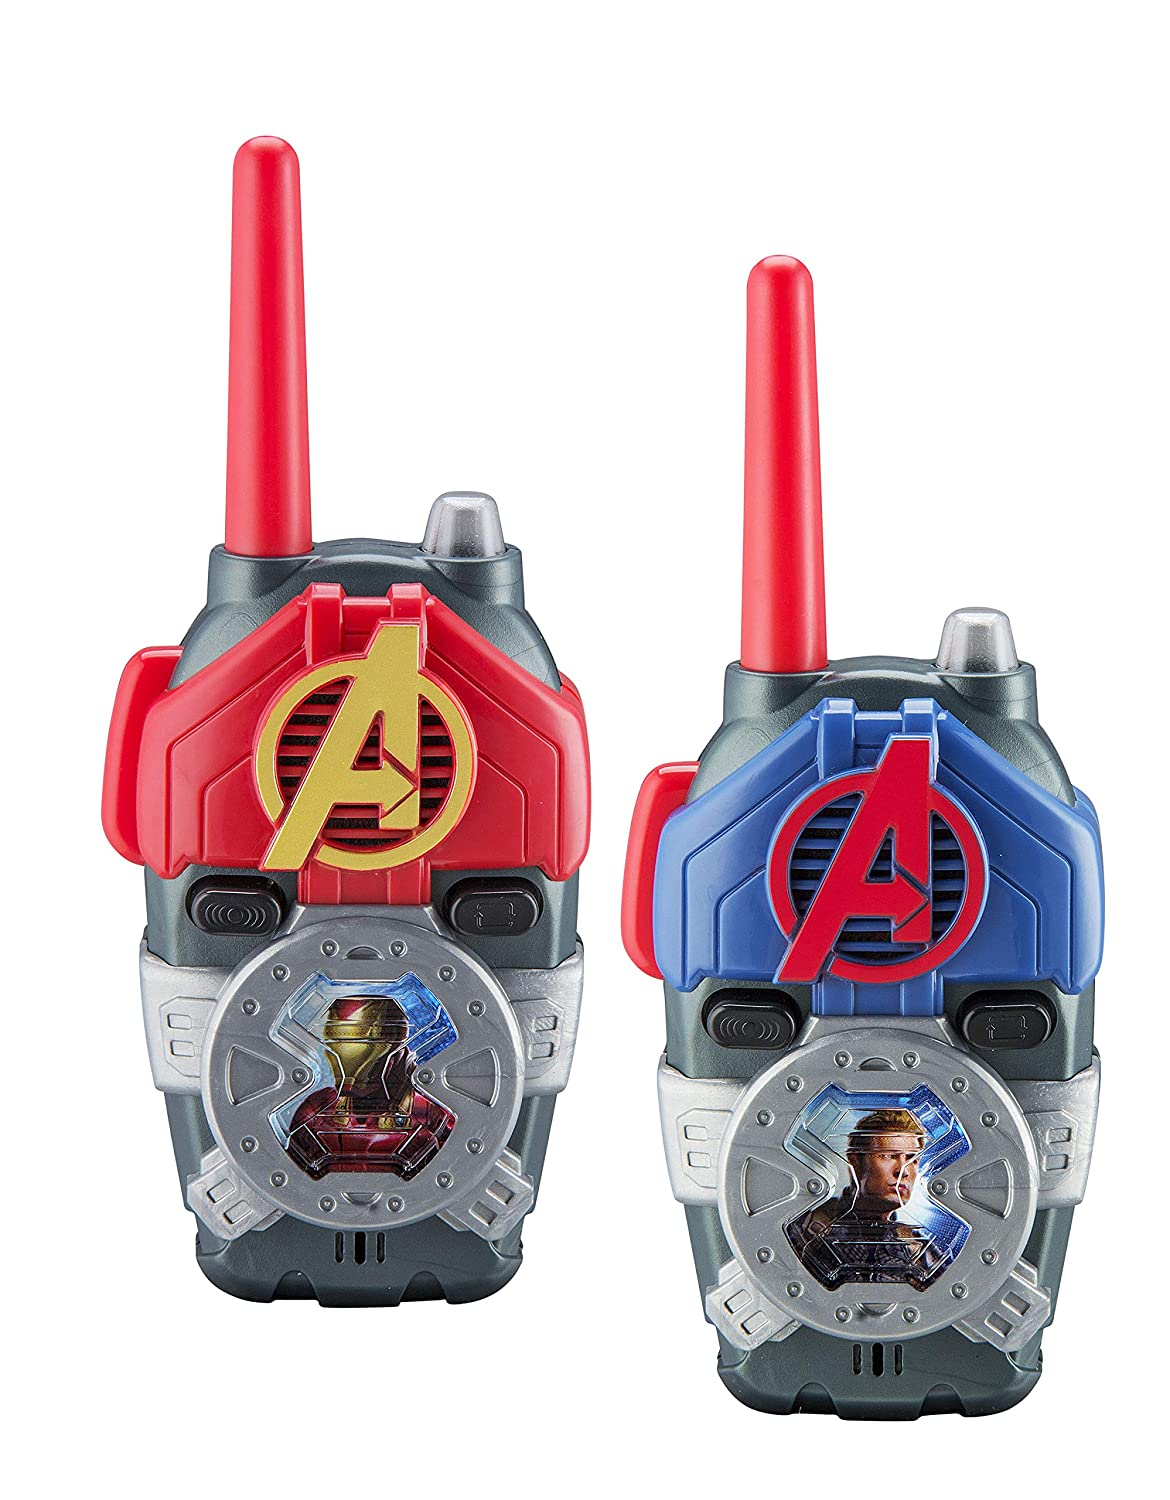 eKids Avengers Endgame FRS Walkie Talkies with Lights   Sounds Kid Friendly Easy to Use